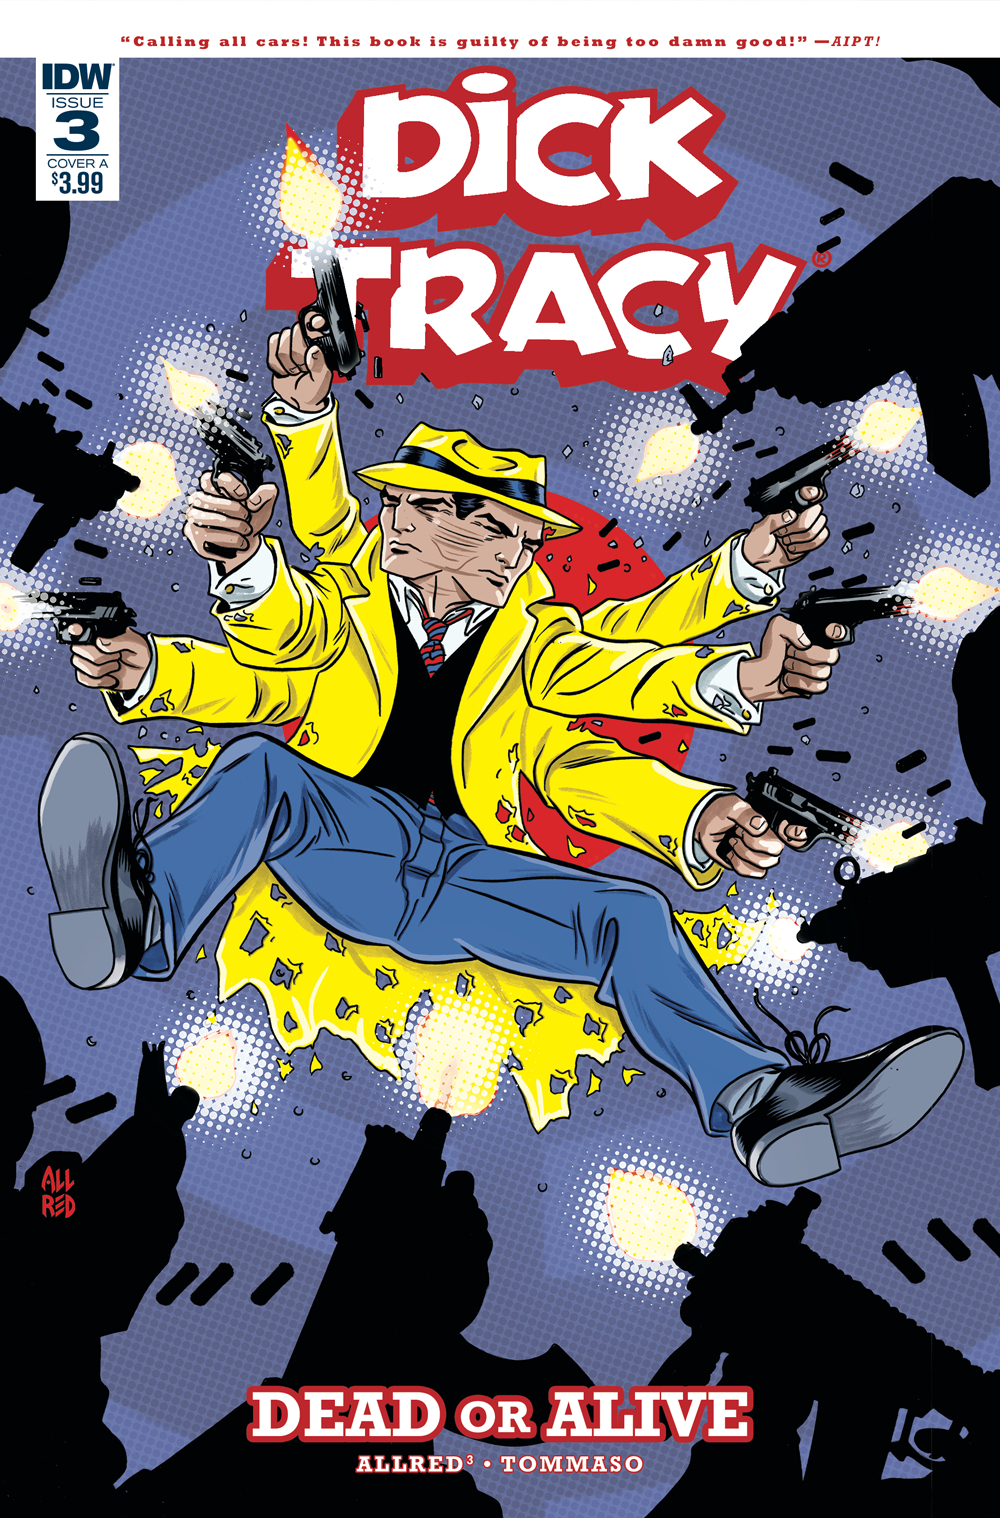 DICK TRACY DEAD OR ALIVE #3 (OF 4) CVR A ALLRED